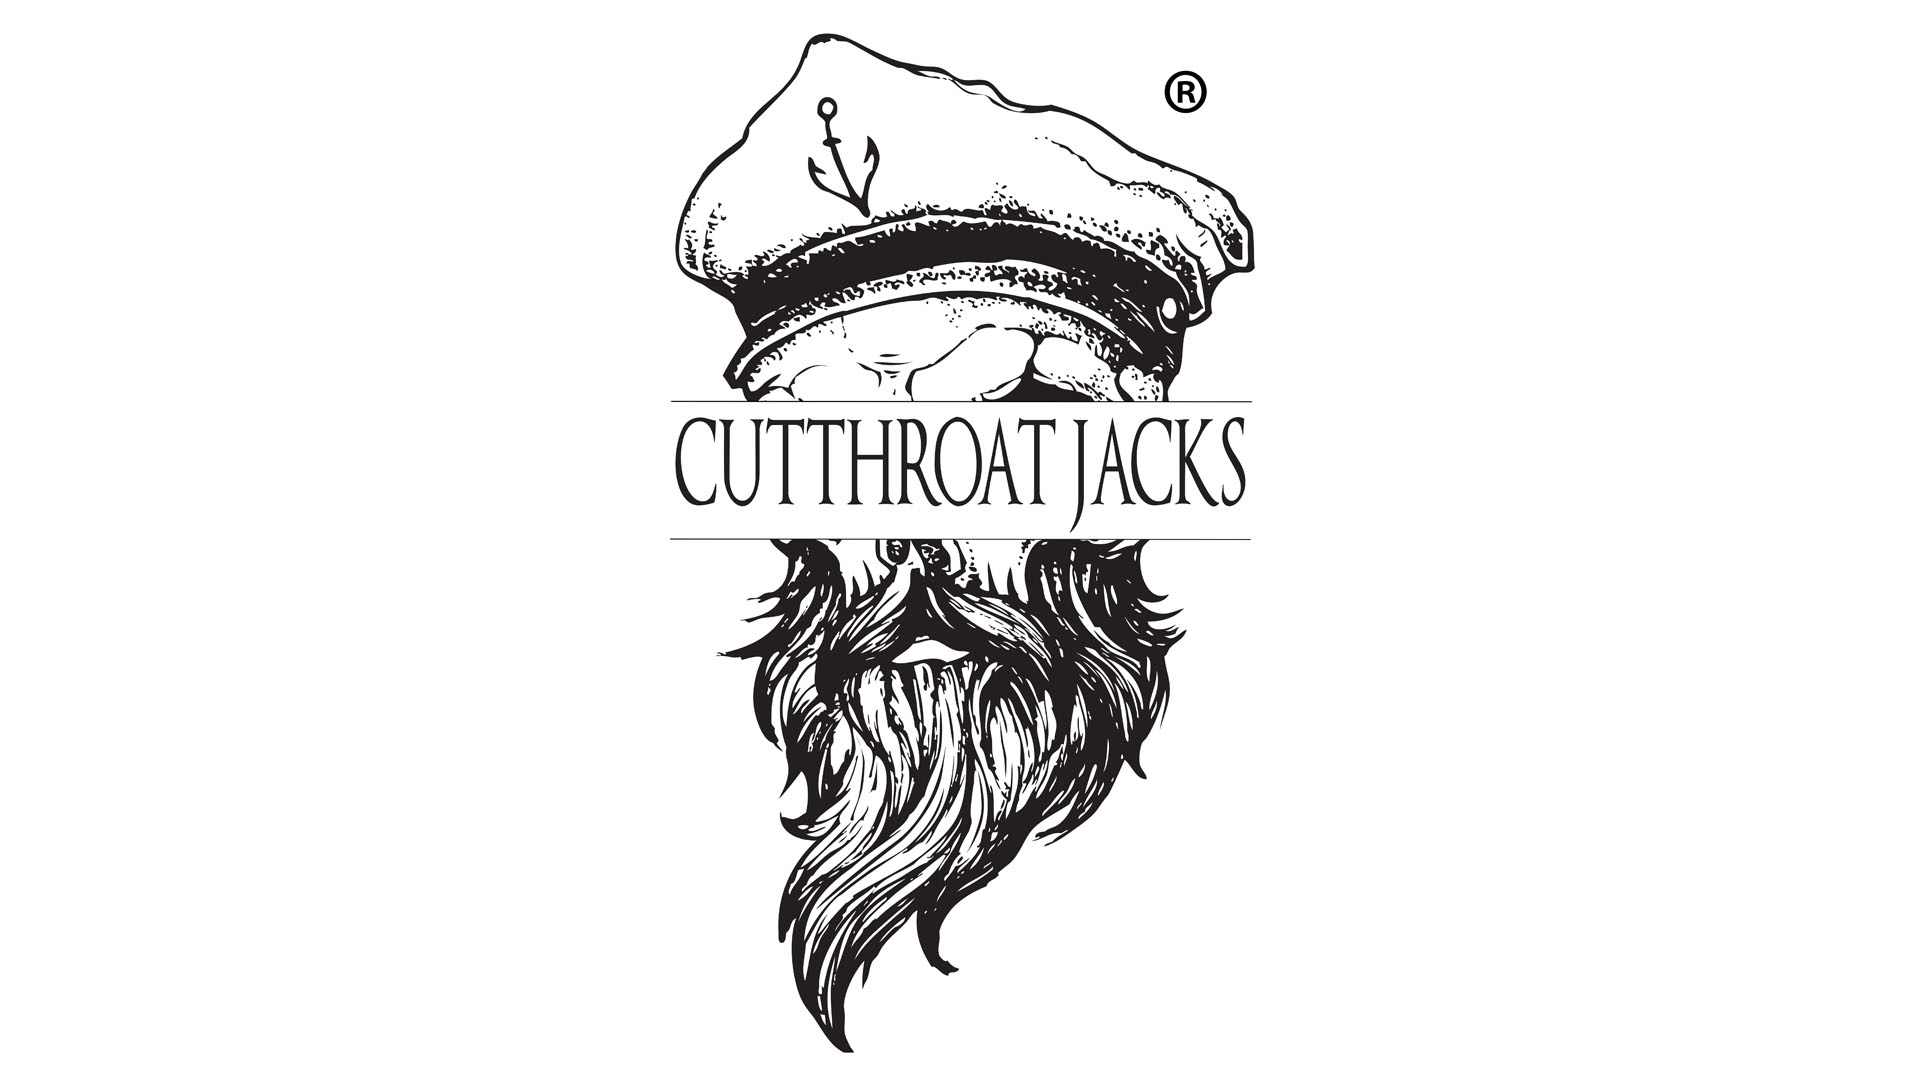 Cutthroat Jacks ®